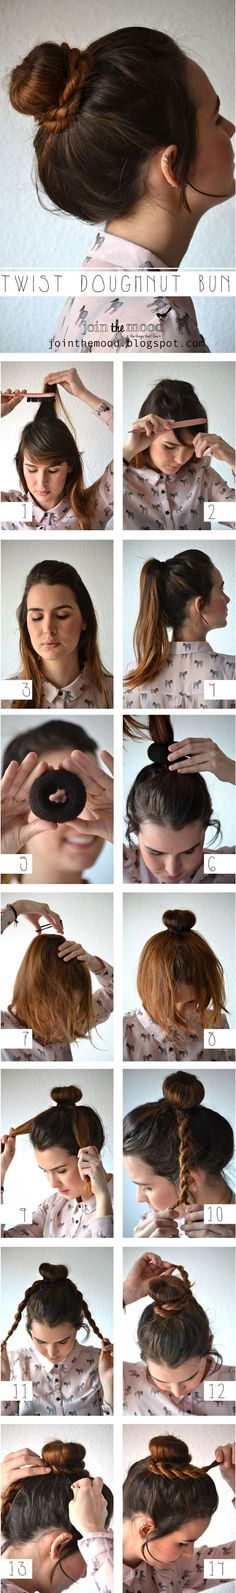 How+To+Make+Twist+Doughnut+Bun+For+Your+Hair.jpg (533×3600)